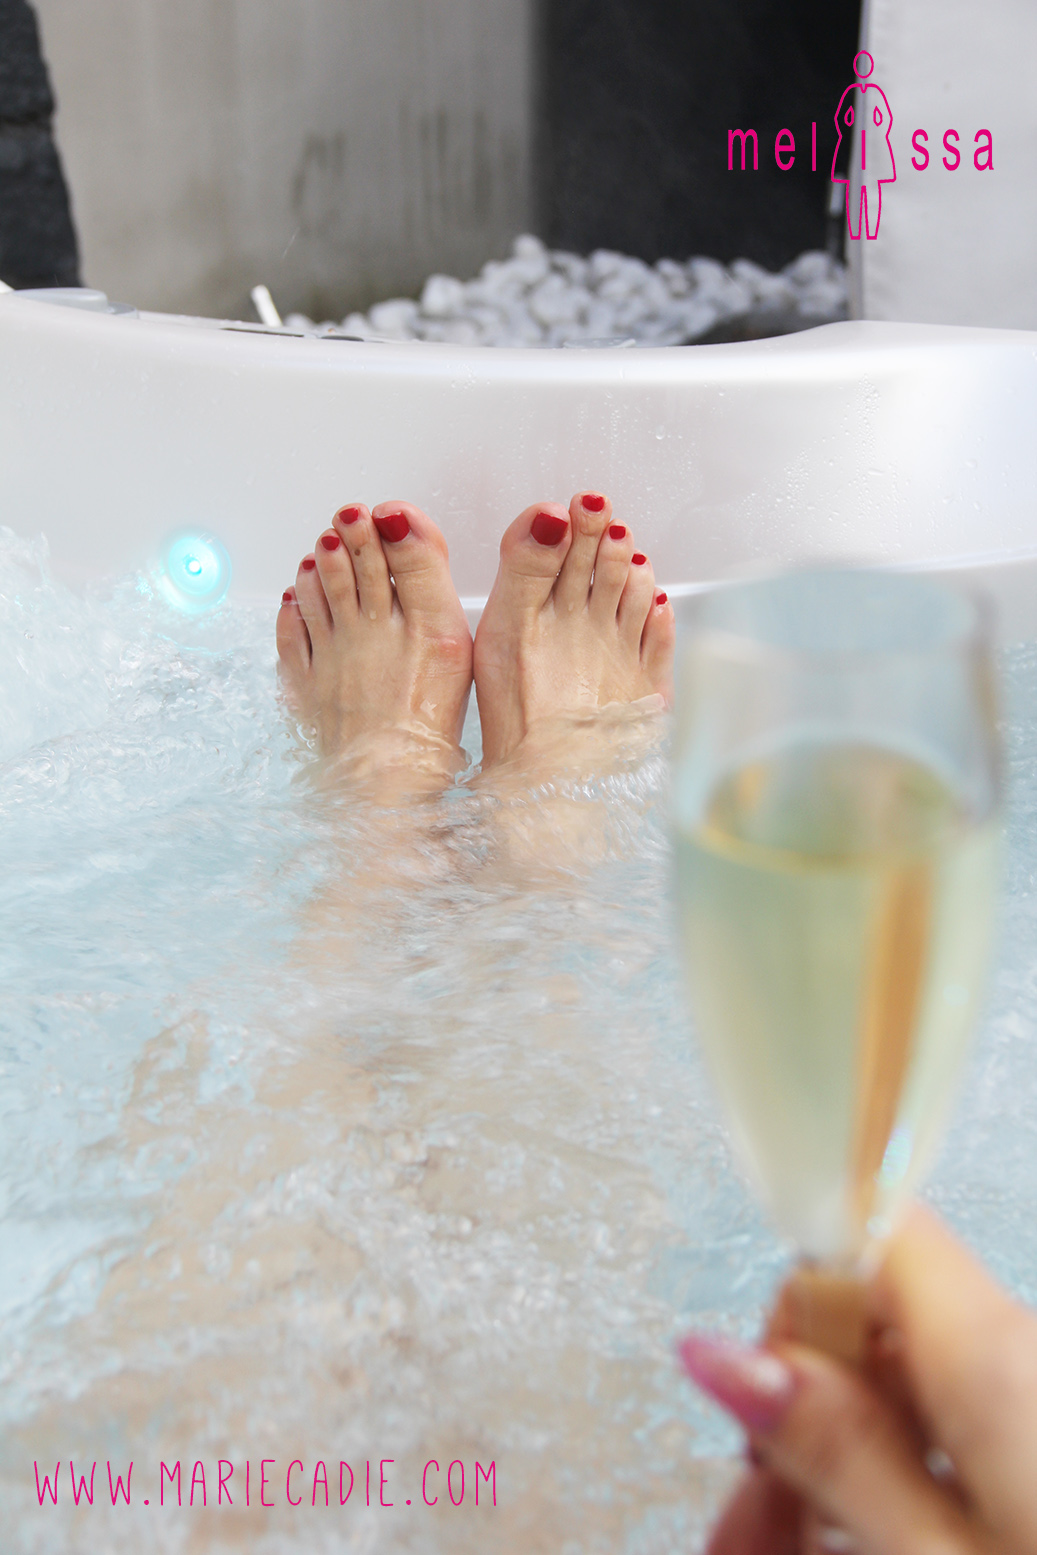 MC_Melissa_bubbles feet